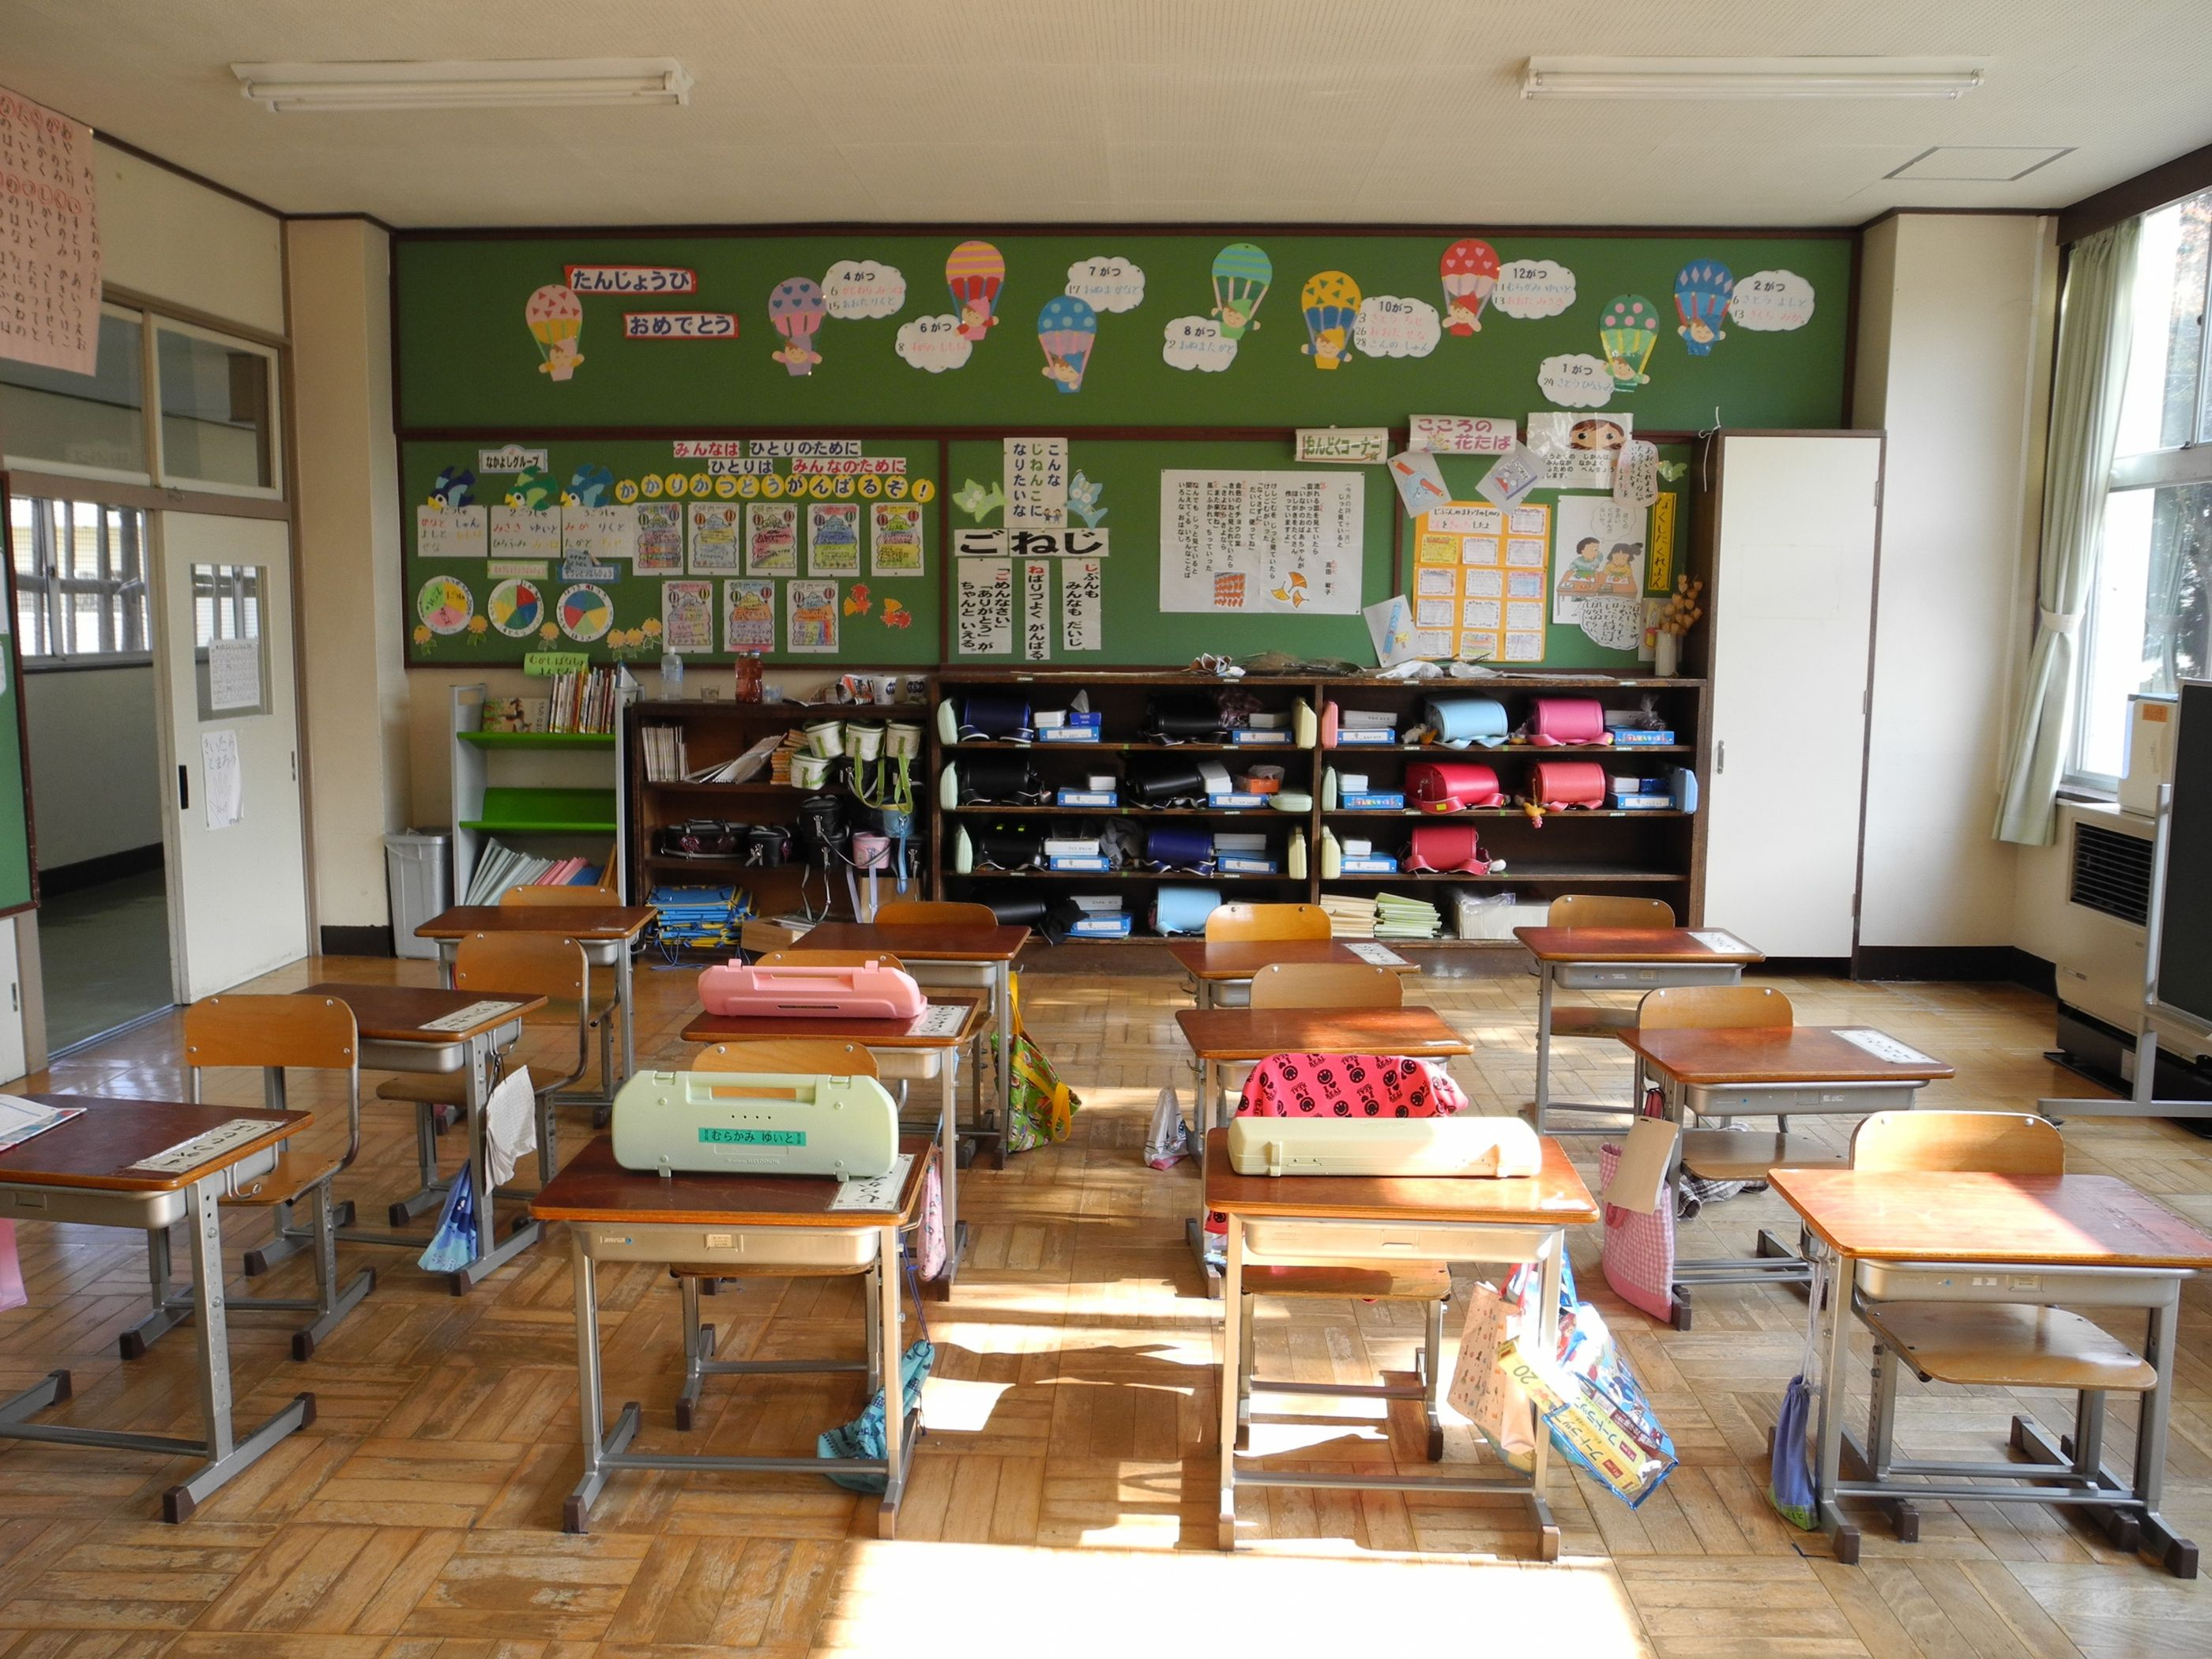 Pictures Of Elementary Classrooms : Elementary school classroom google search board